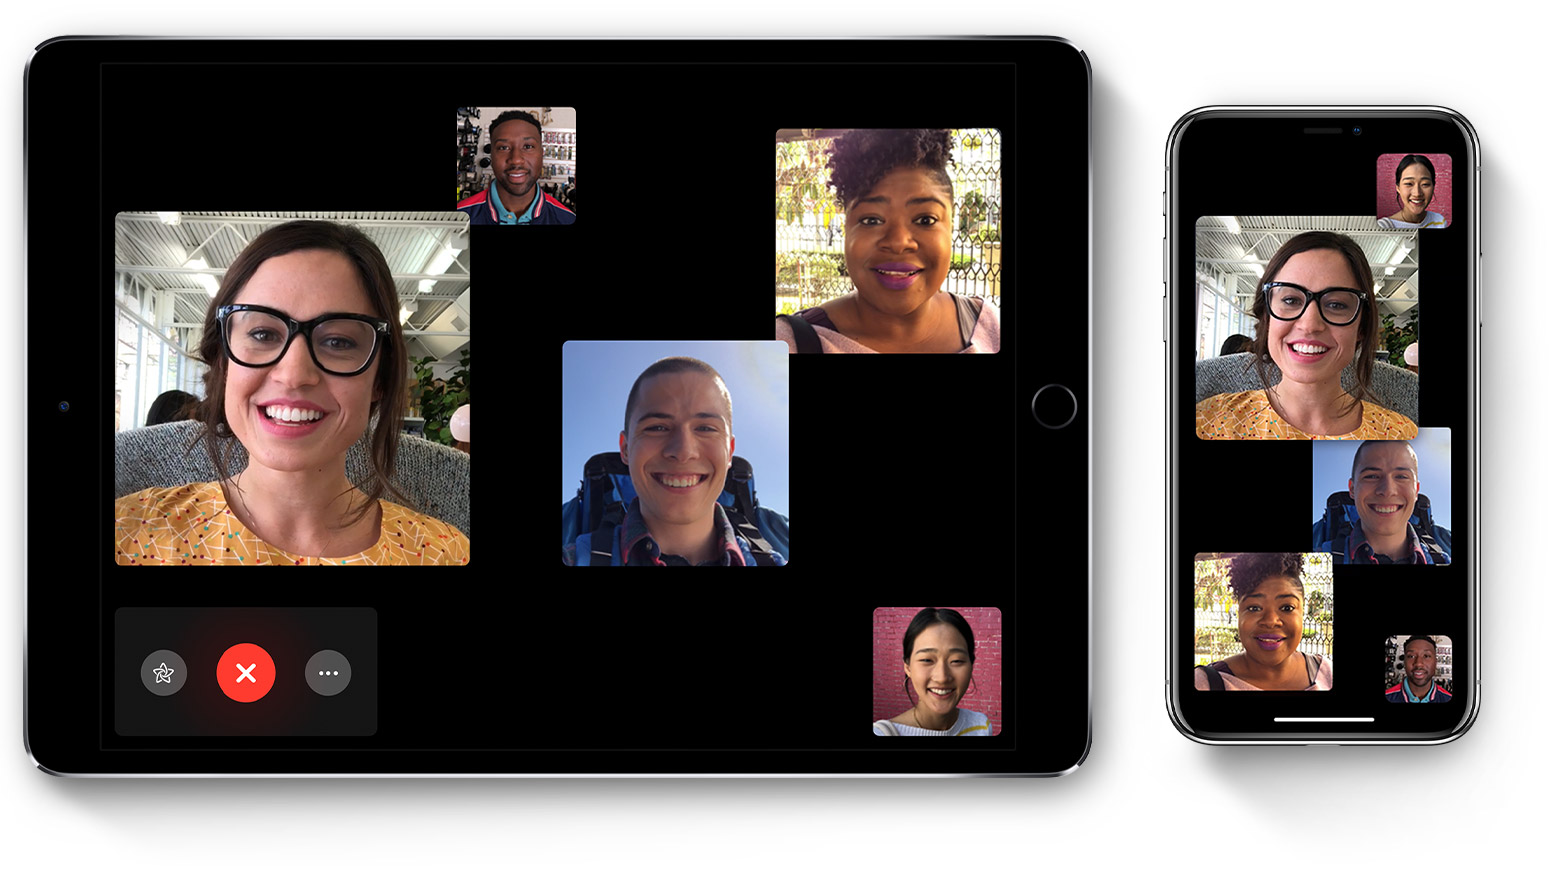 To use Group FaceTime video calls, you need an iPhone 6s or later, iPad Pro  or later, iPad Air 2, or iPad Mini 4 with iOS 12.1. Earlier models of  iPhone, ...